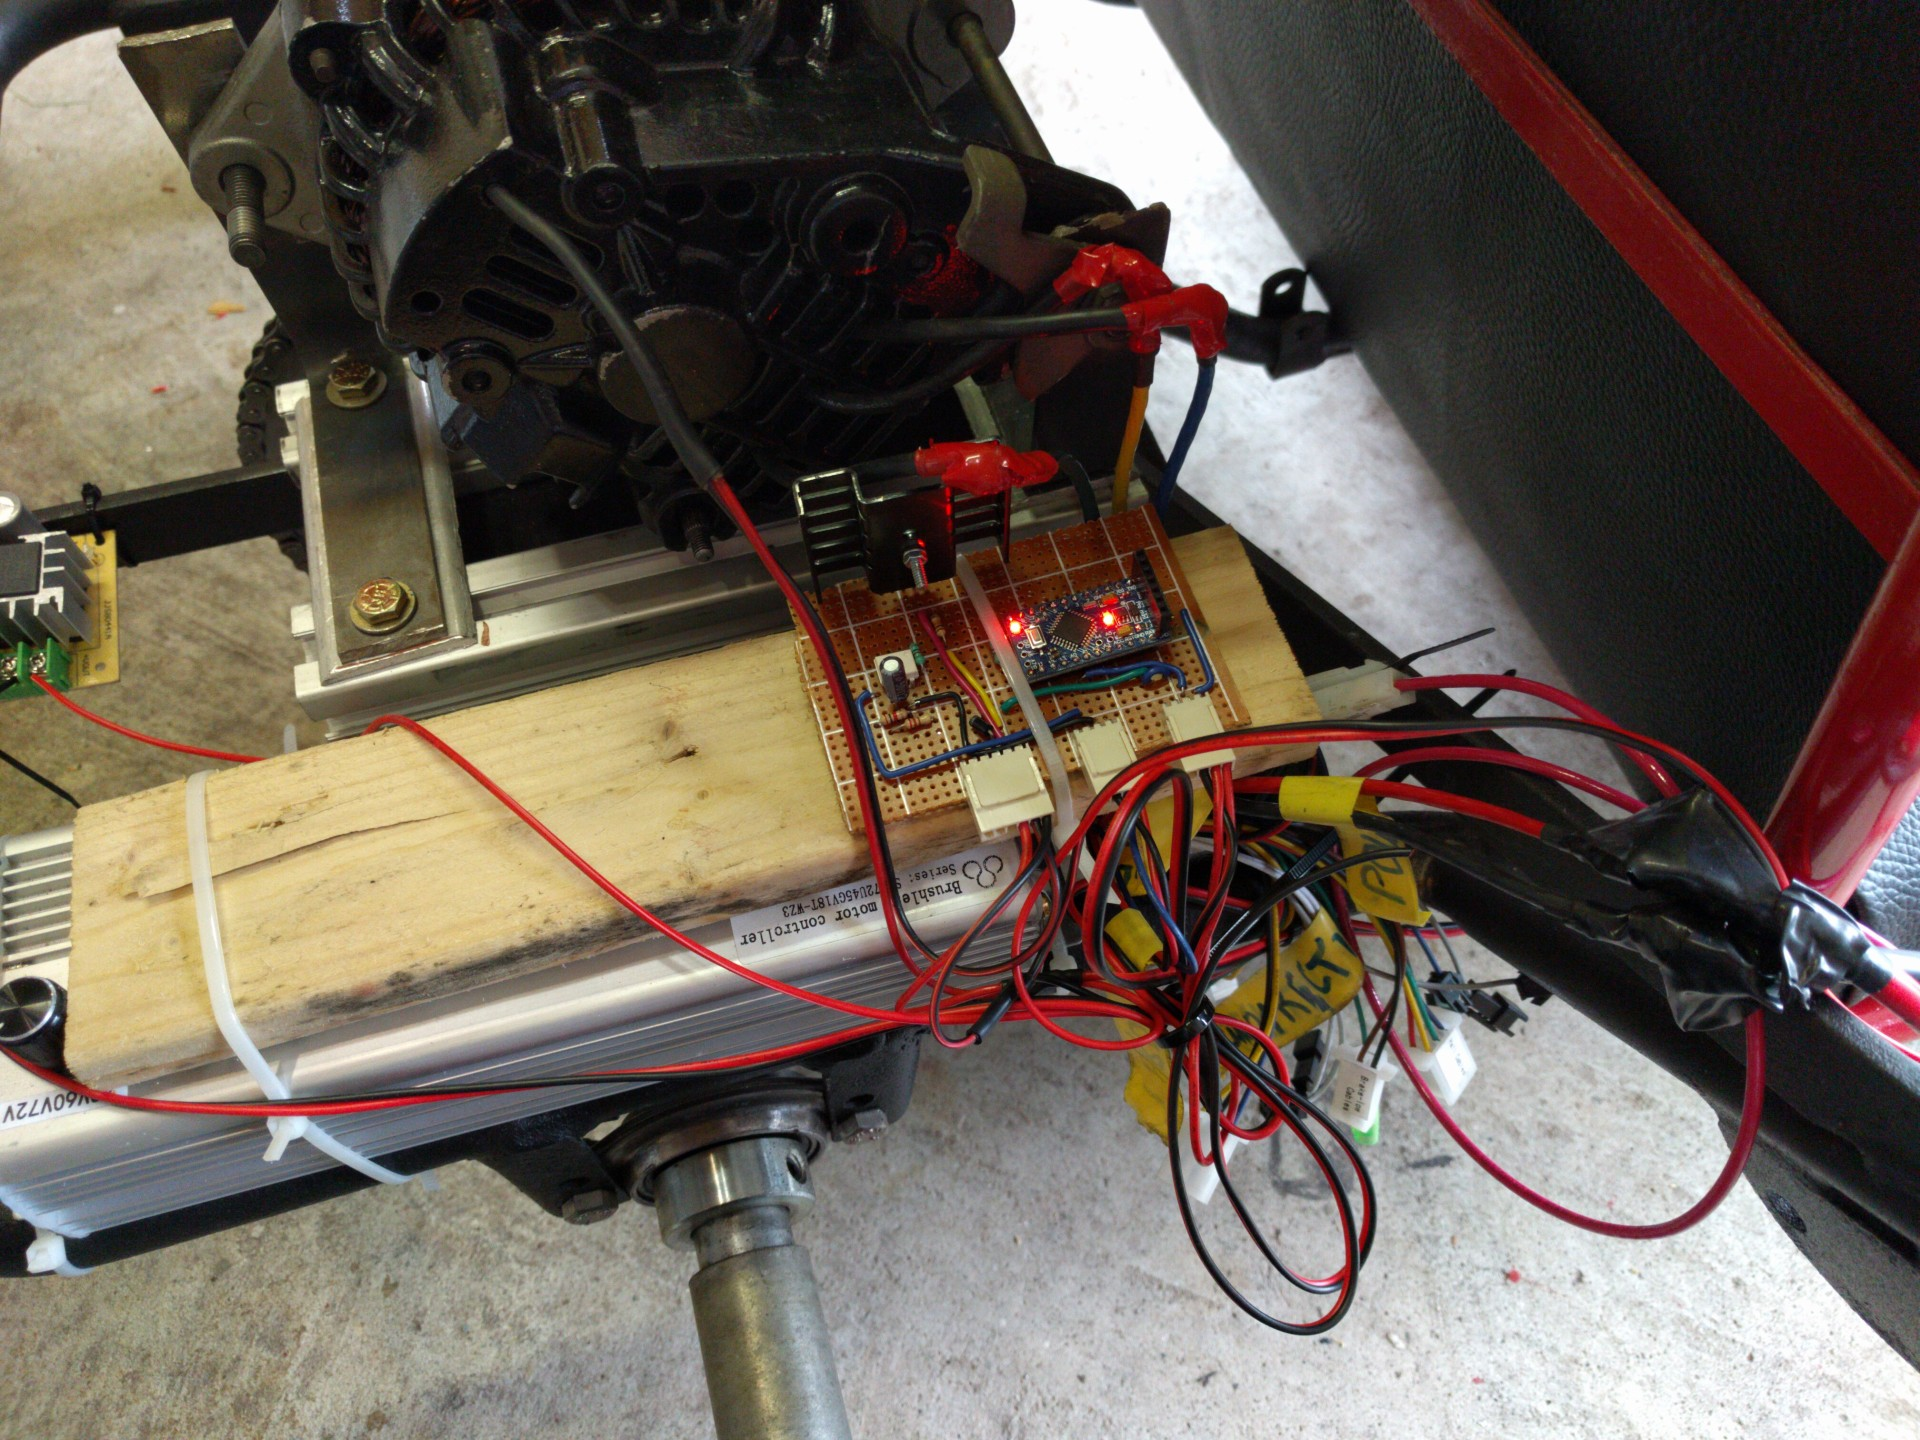 E Kart The Electric Go Details Wiring Schematic Ac Car Conversion Ev Electrical Diagrams Testing Throttle Control And Field Coil Circuit Here We Are Also Interrupt Driven Os On Arduino Pro Using Output Compare For